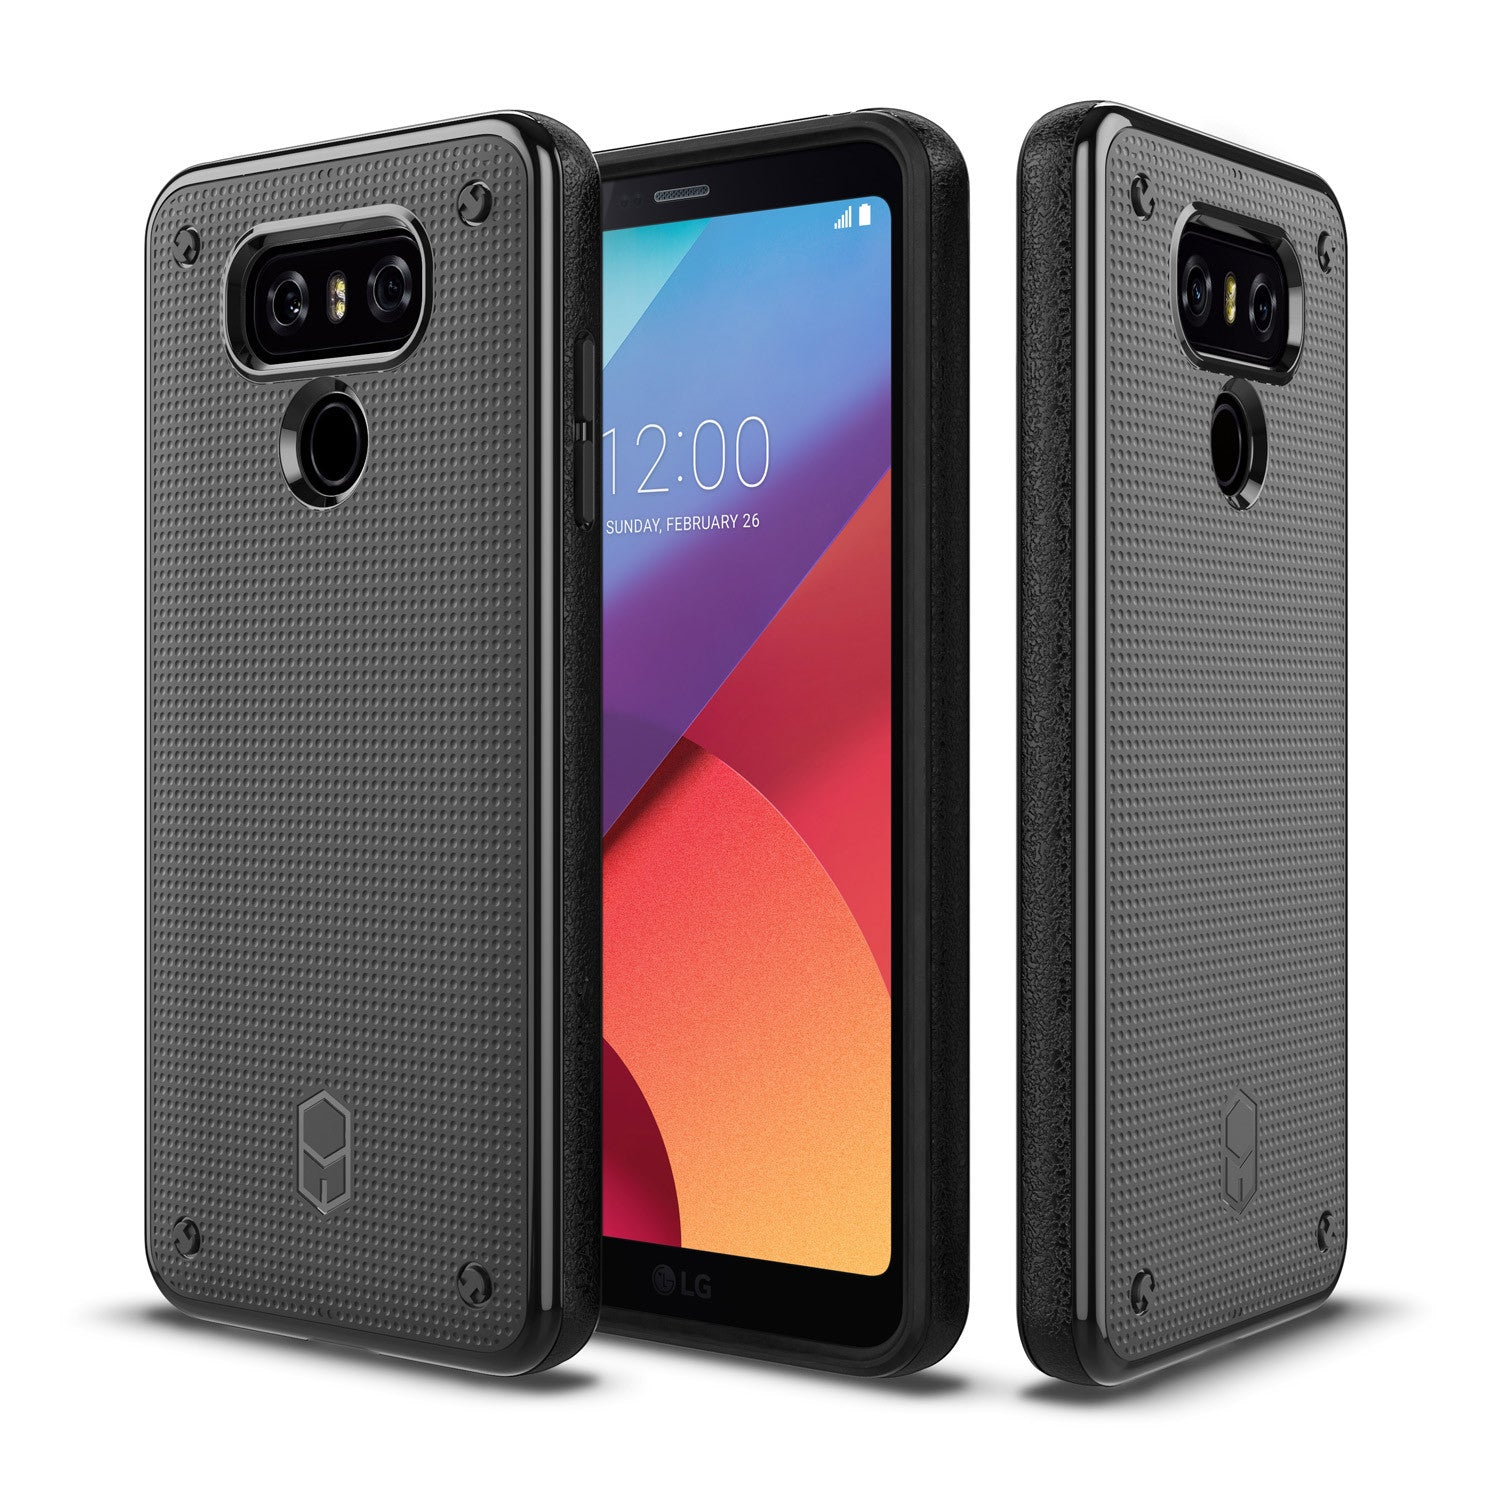 LG G6 - FLEXGUARD CASE WITH PORON XRD